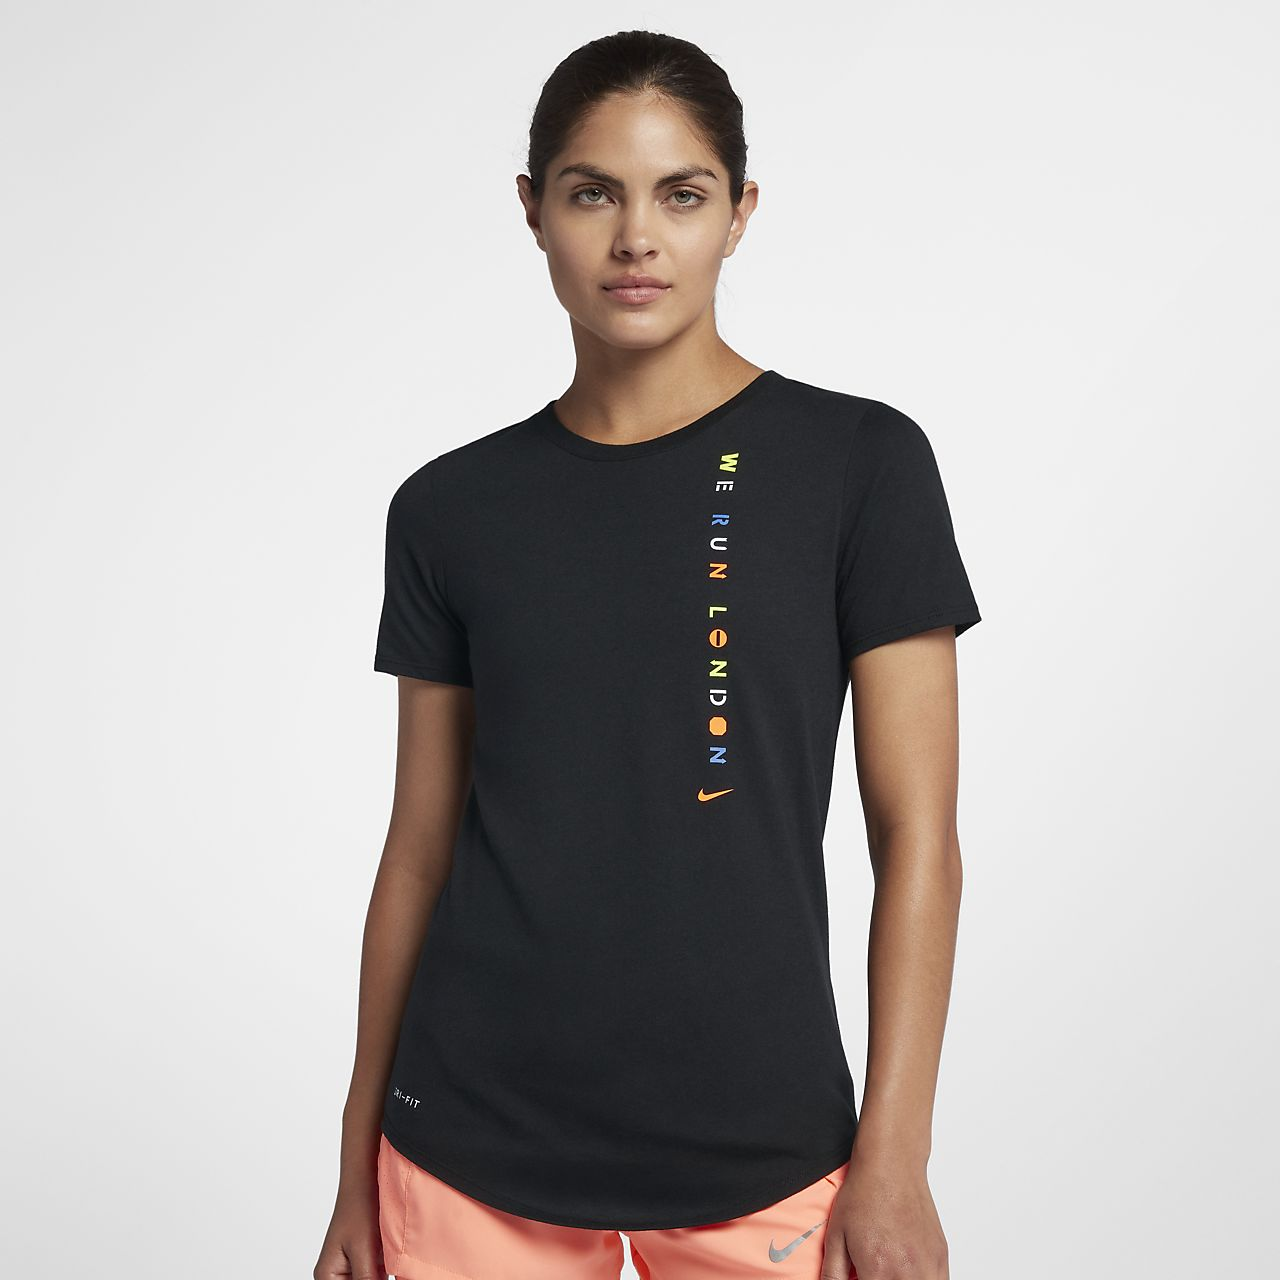 Women's Running T-Shirt. Nike (London 2018)